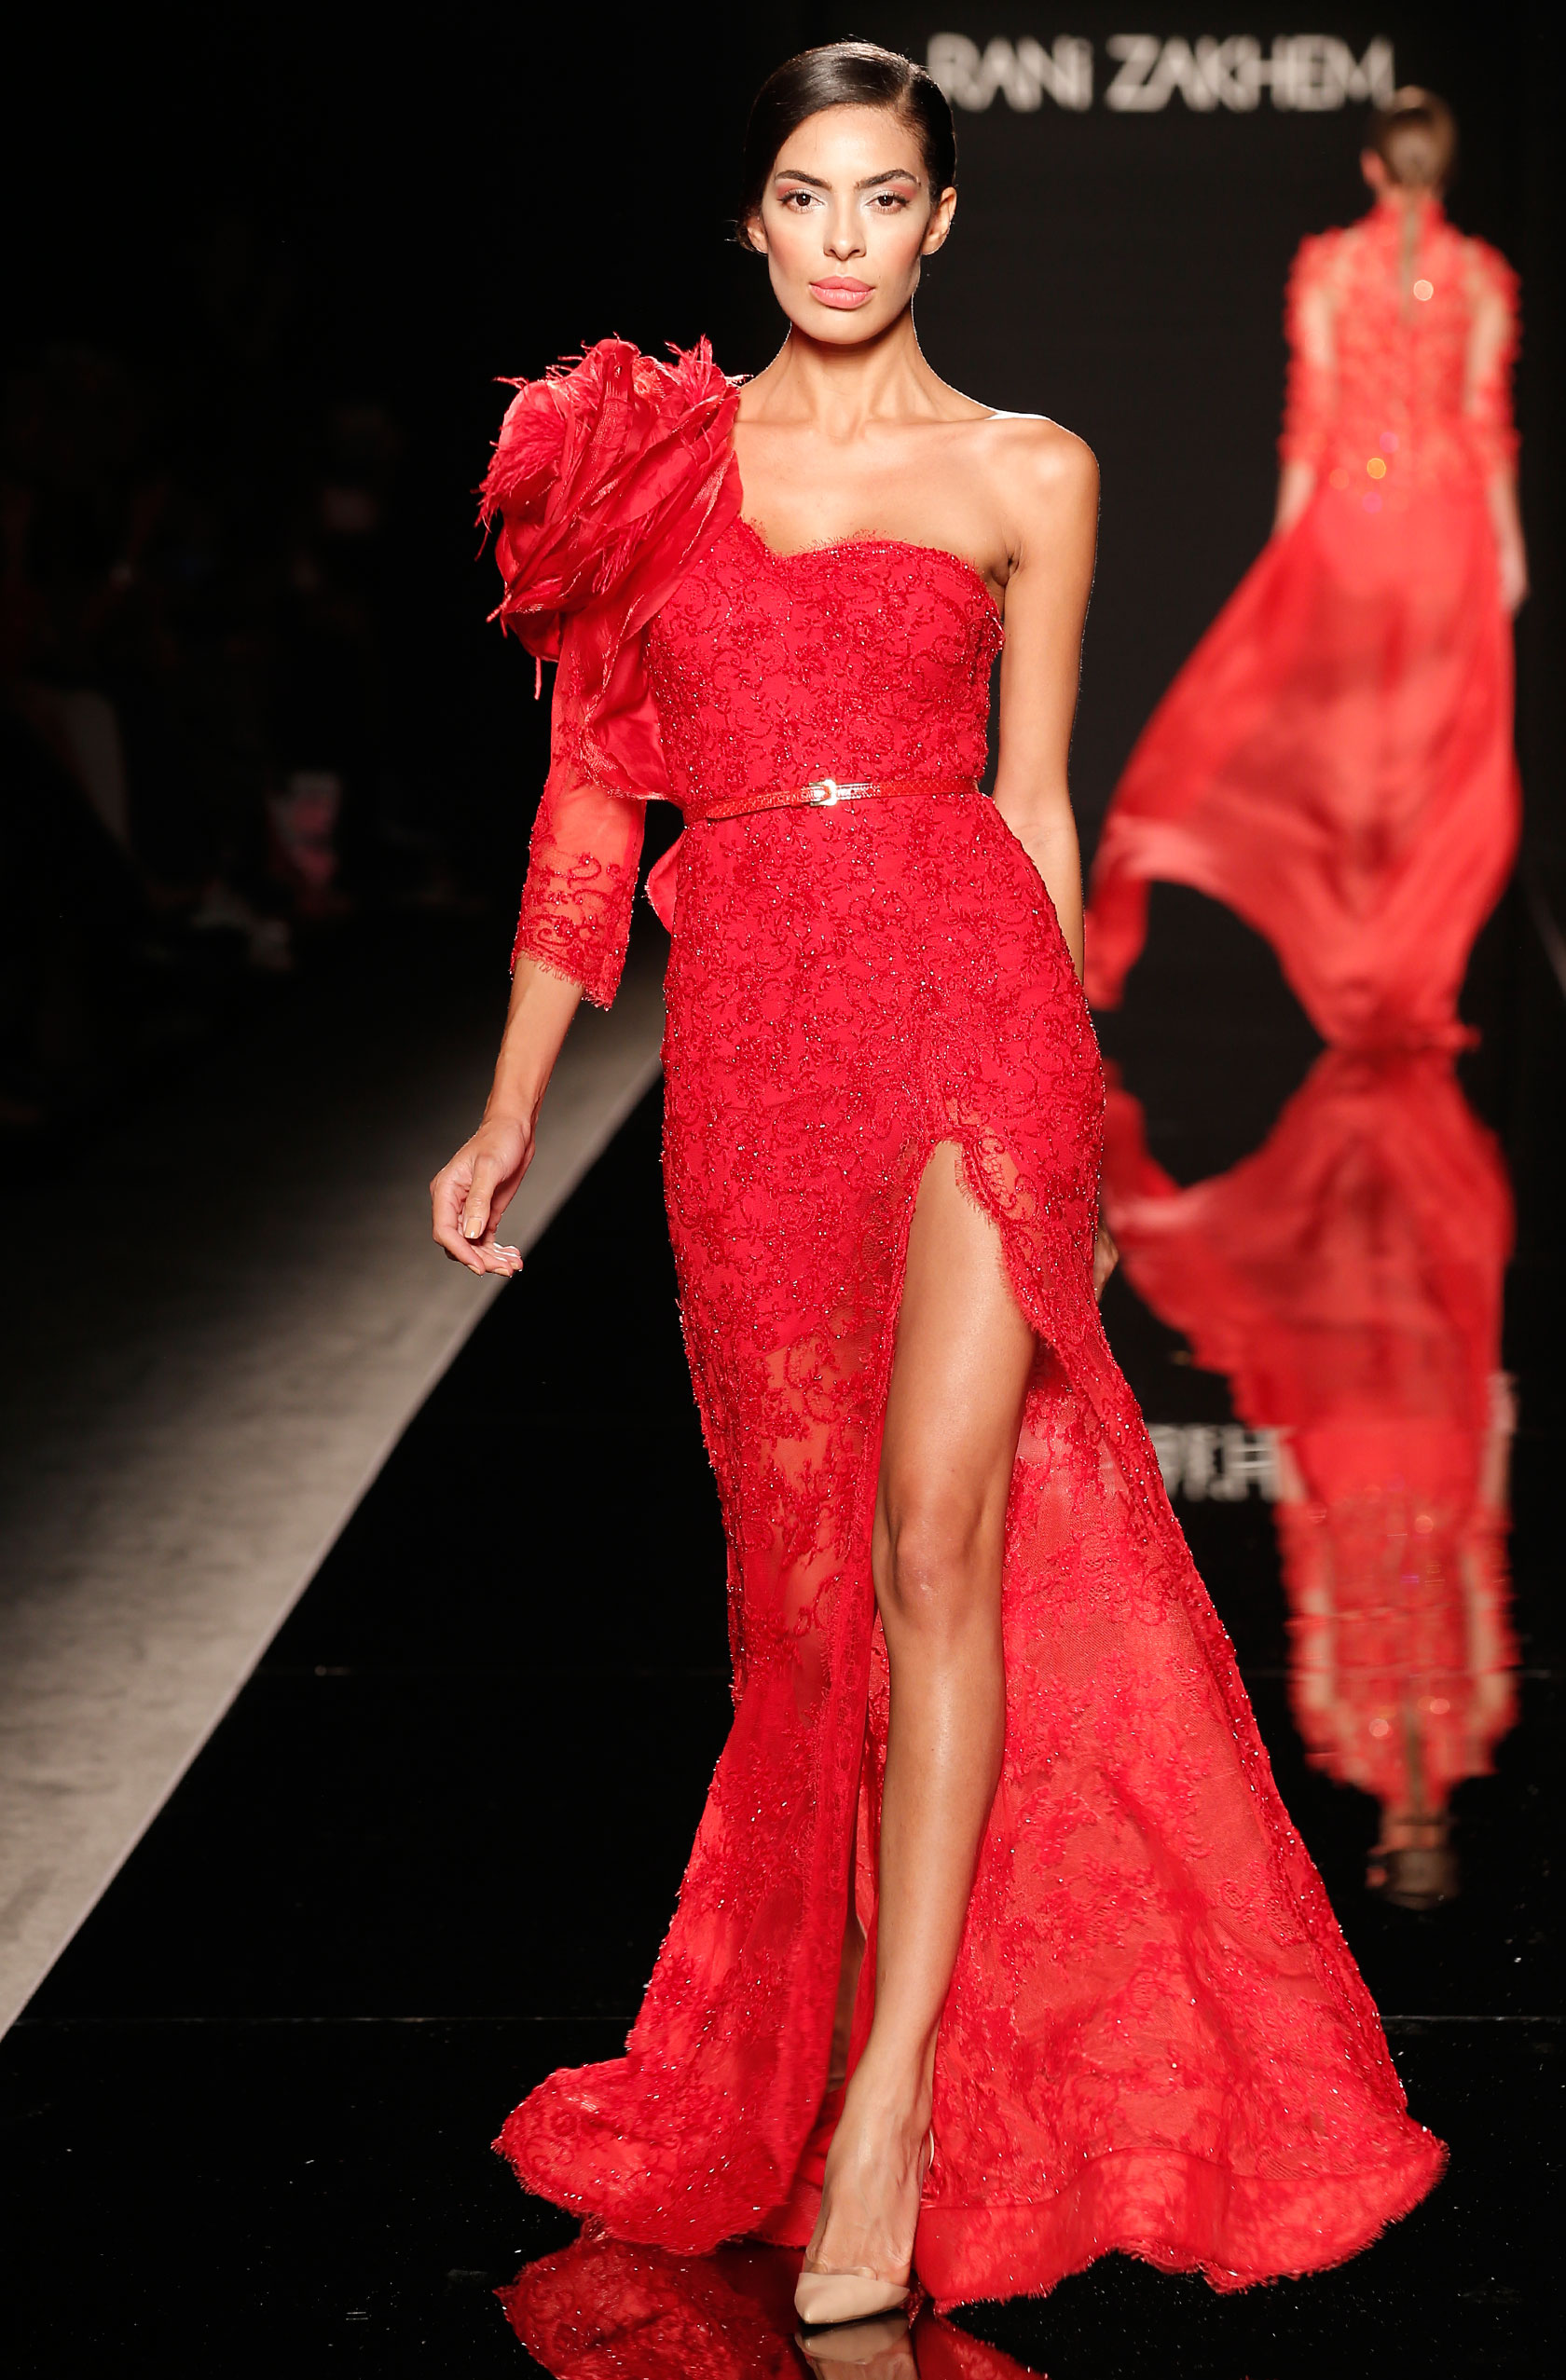 RANI ZAKHEM HAUTE COUTURE FALL/WINTER 2014-2015